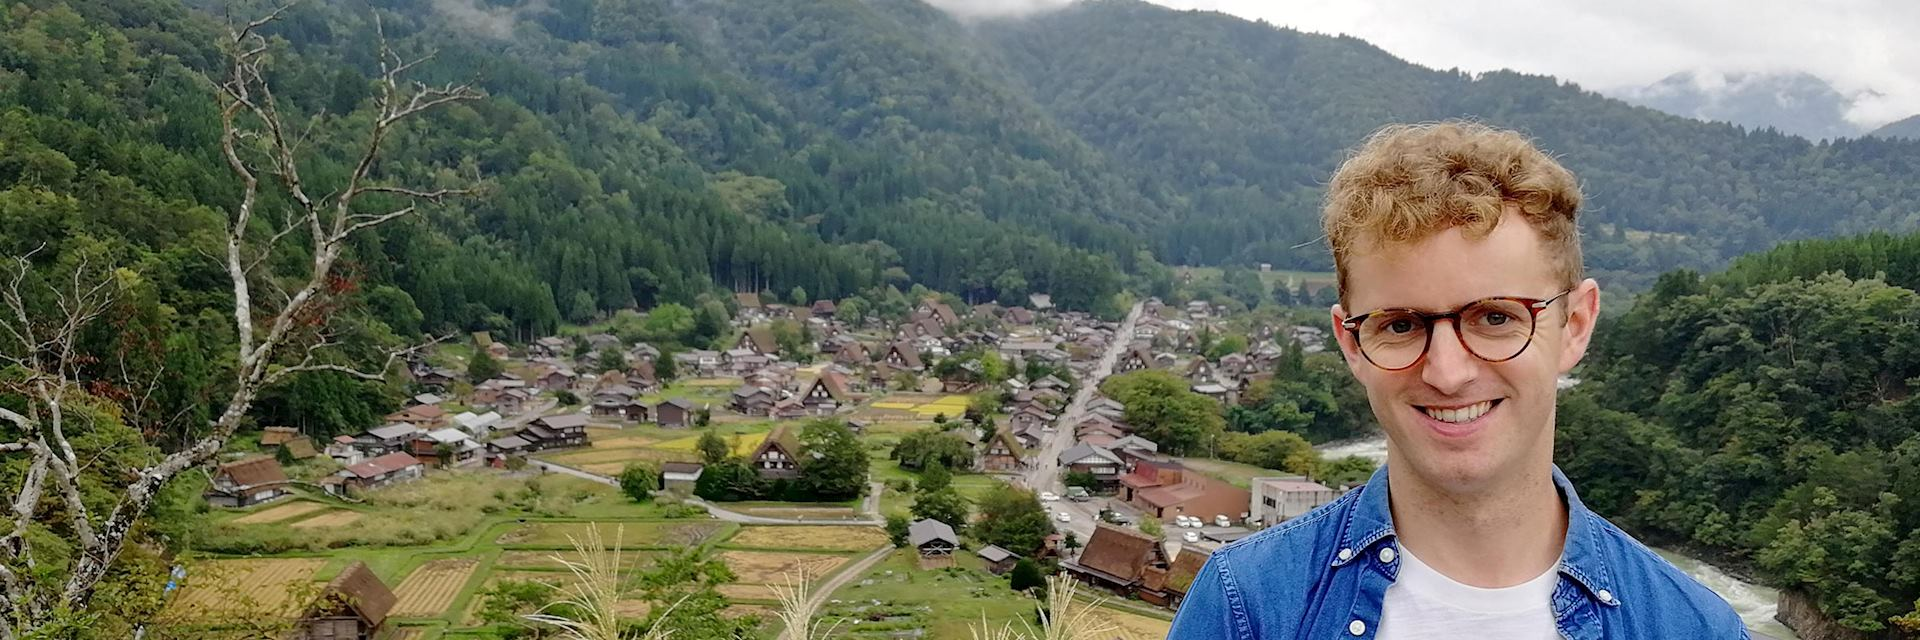 David visiting Shirakawago, Japan